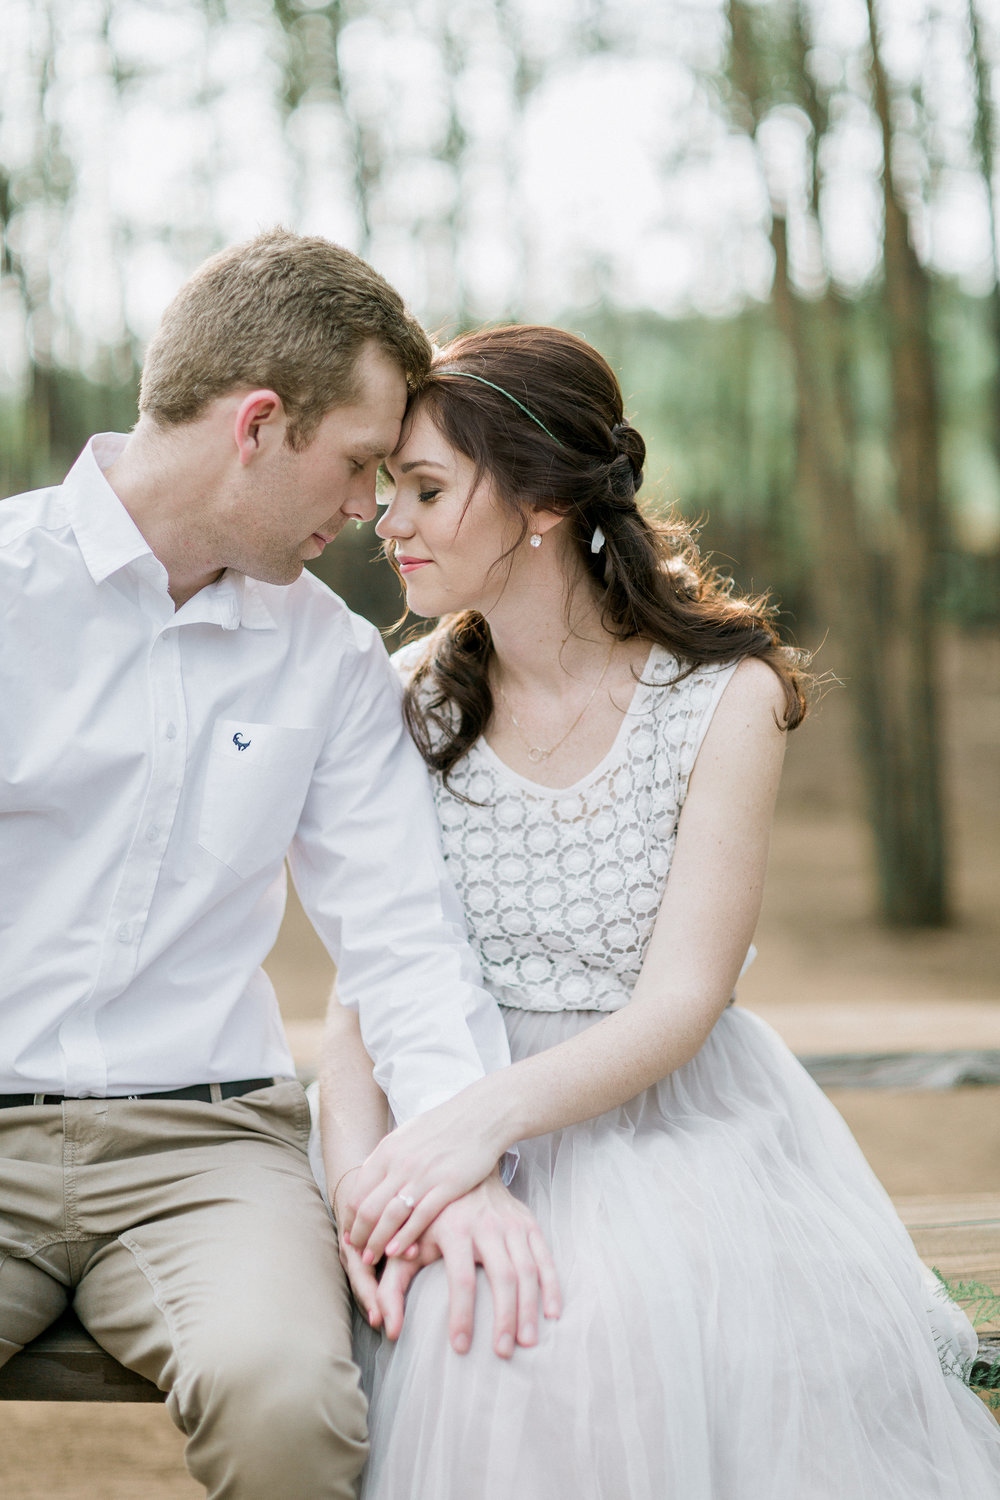 South africa wedding photographer clareece smit photography05.jpg